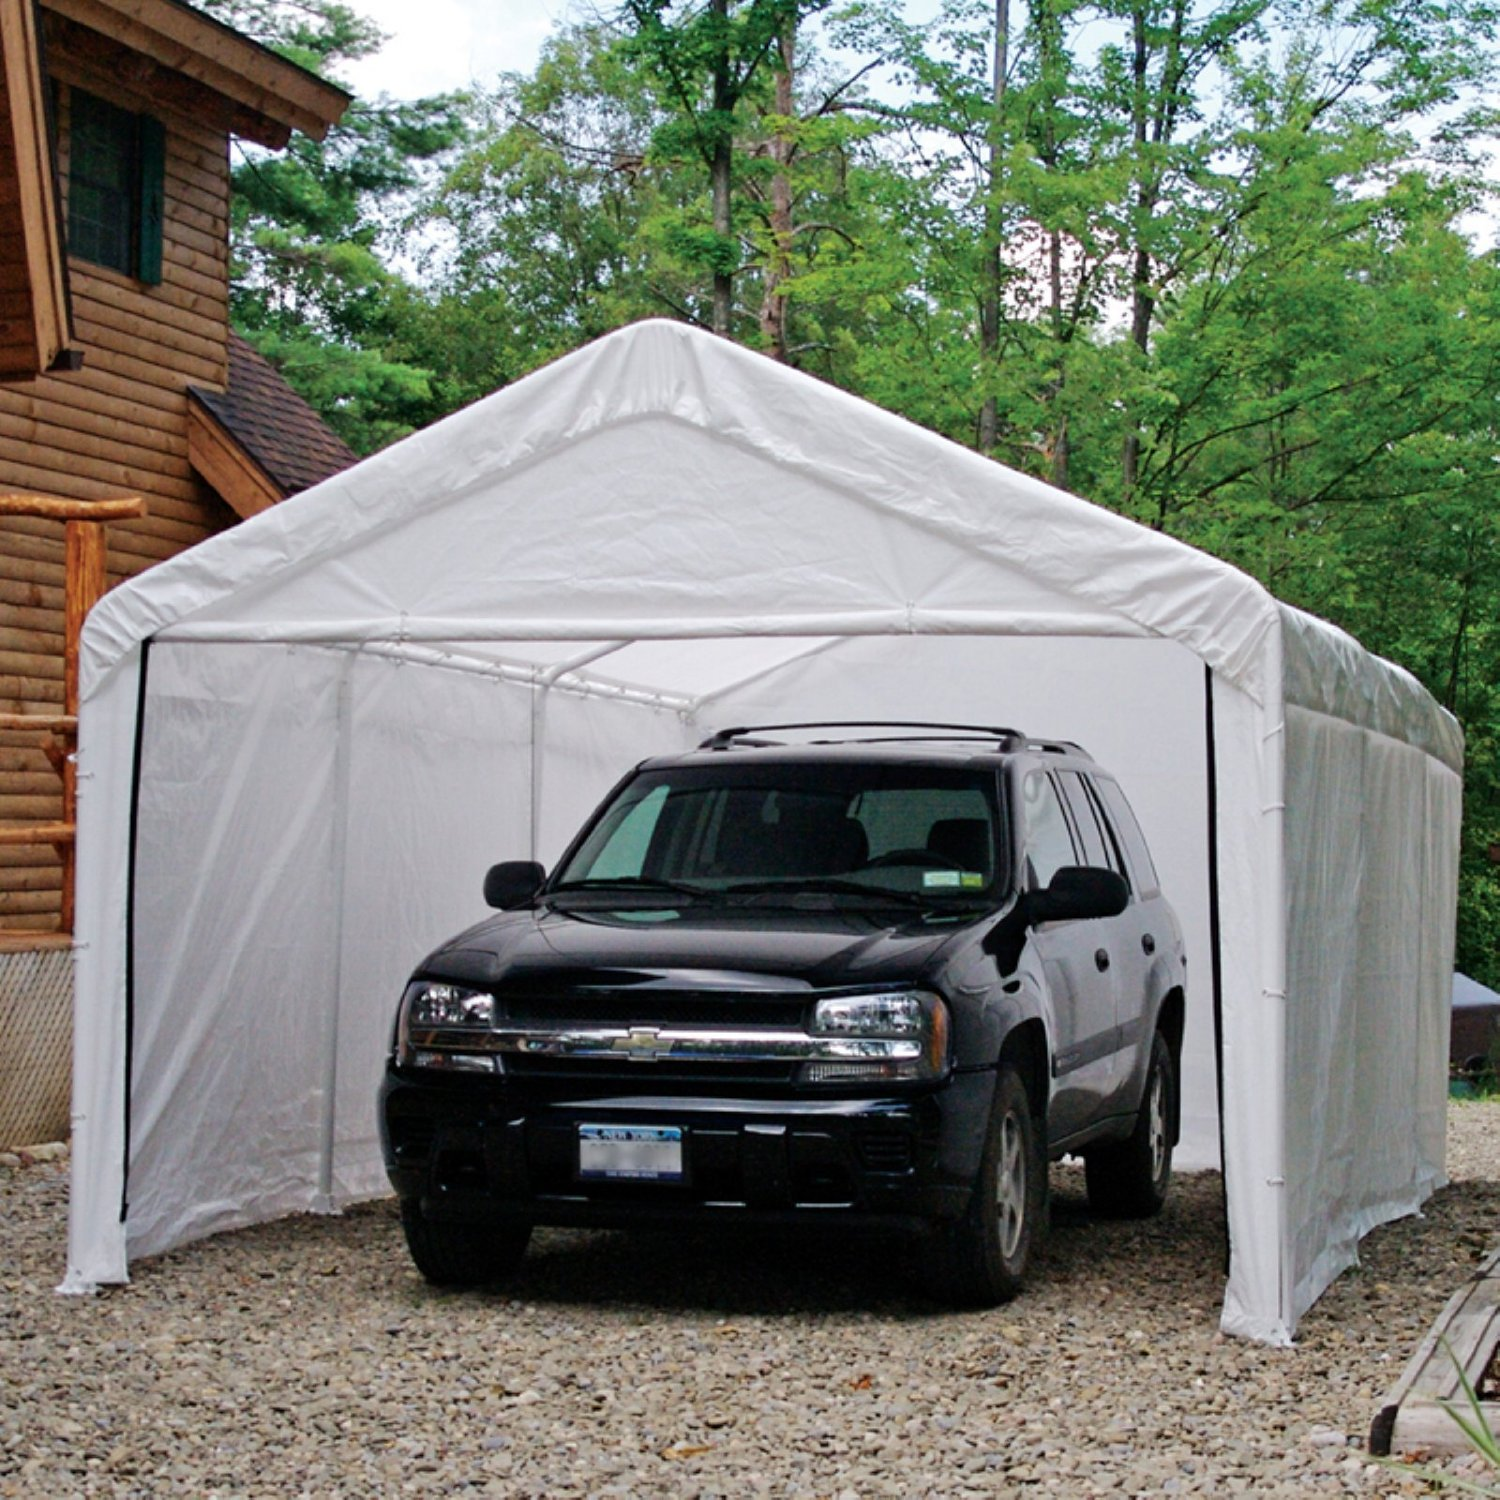 car canopy enclosure kit - white, canopy not included CYACAUJ